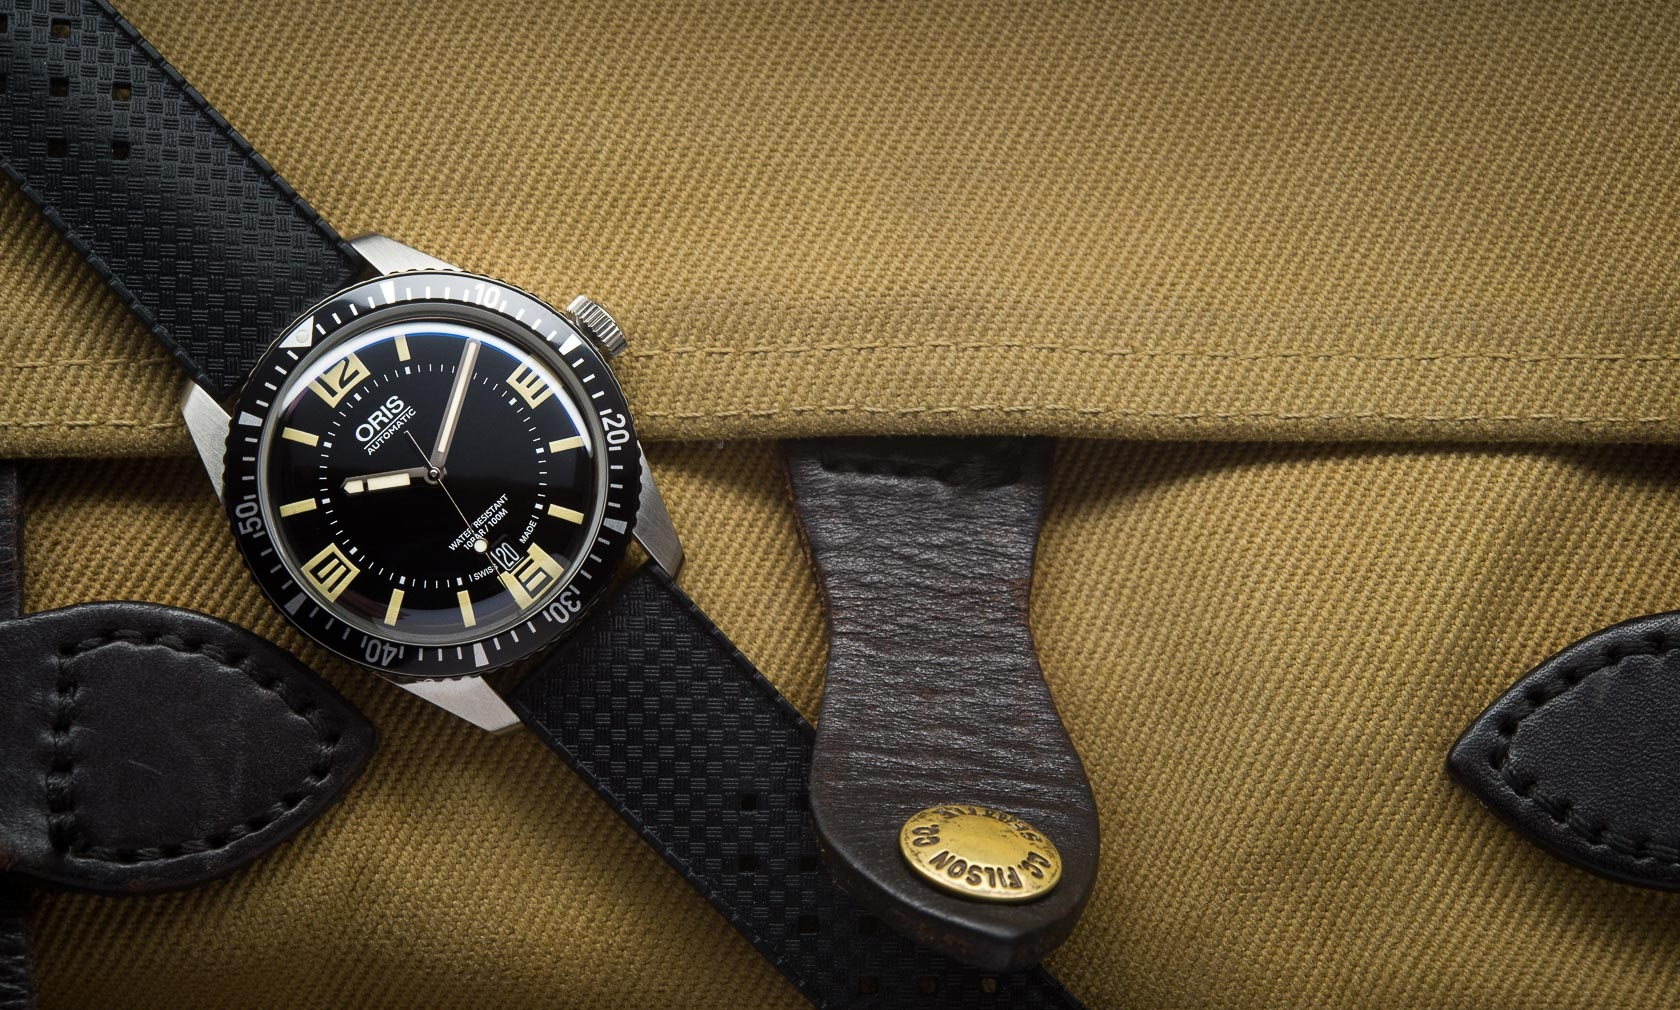 00__Oris-Divers-sixty-five-32.jpg